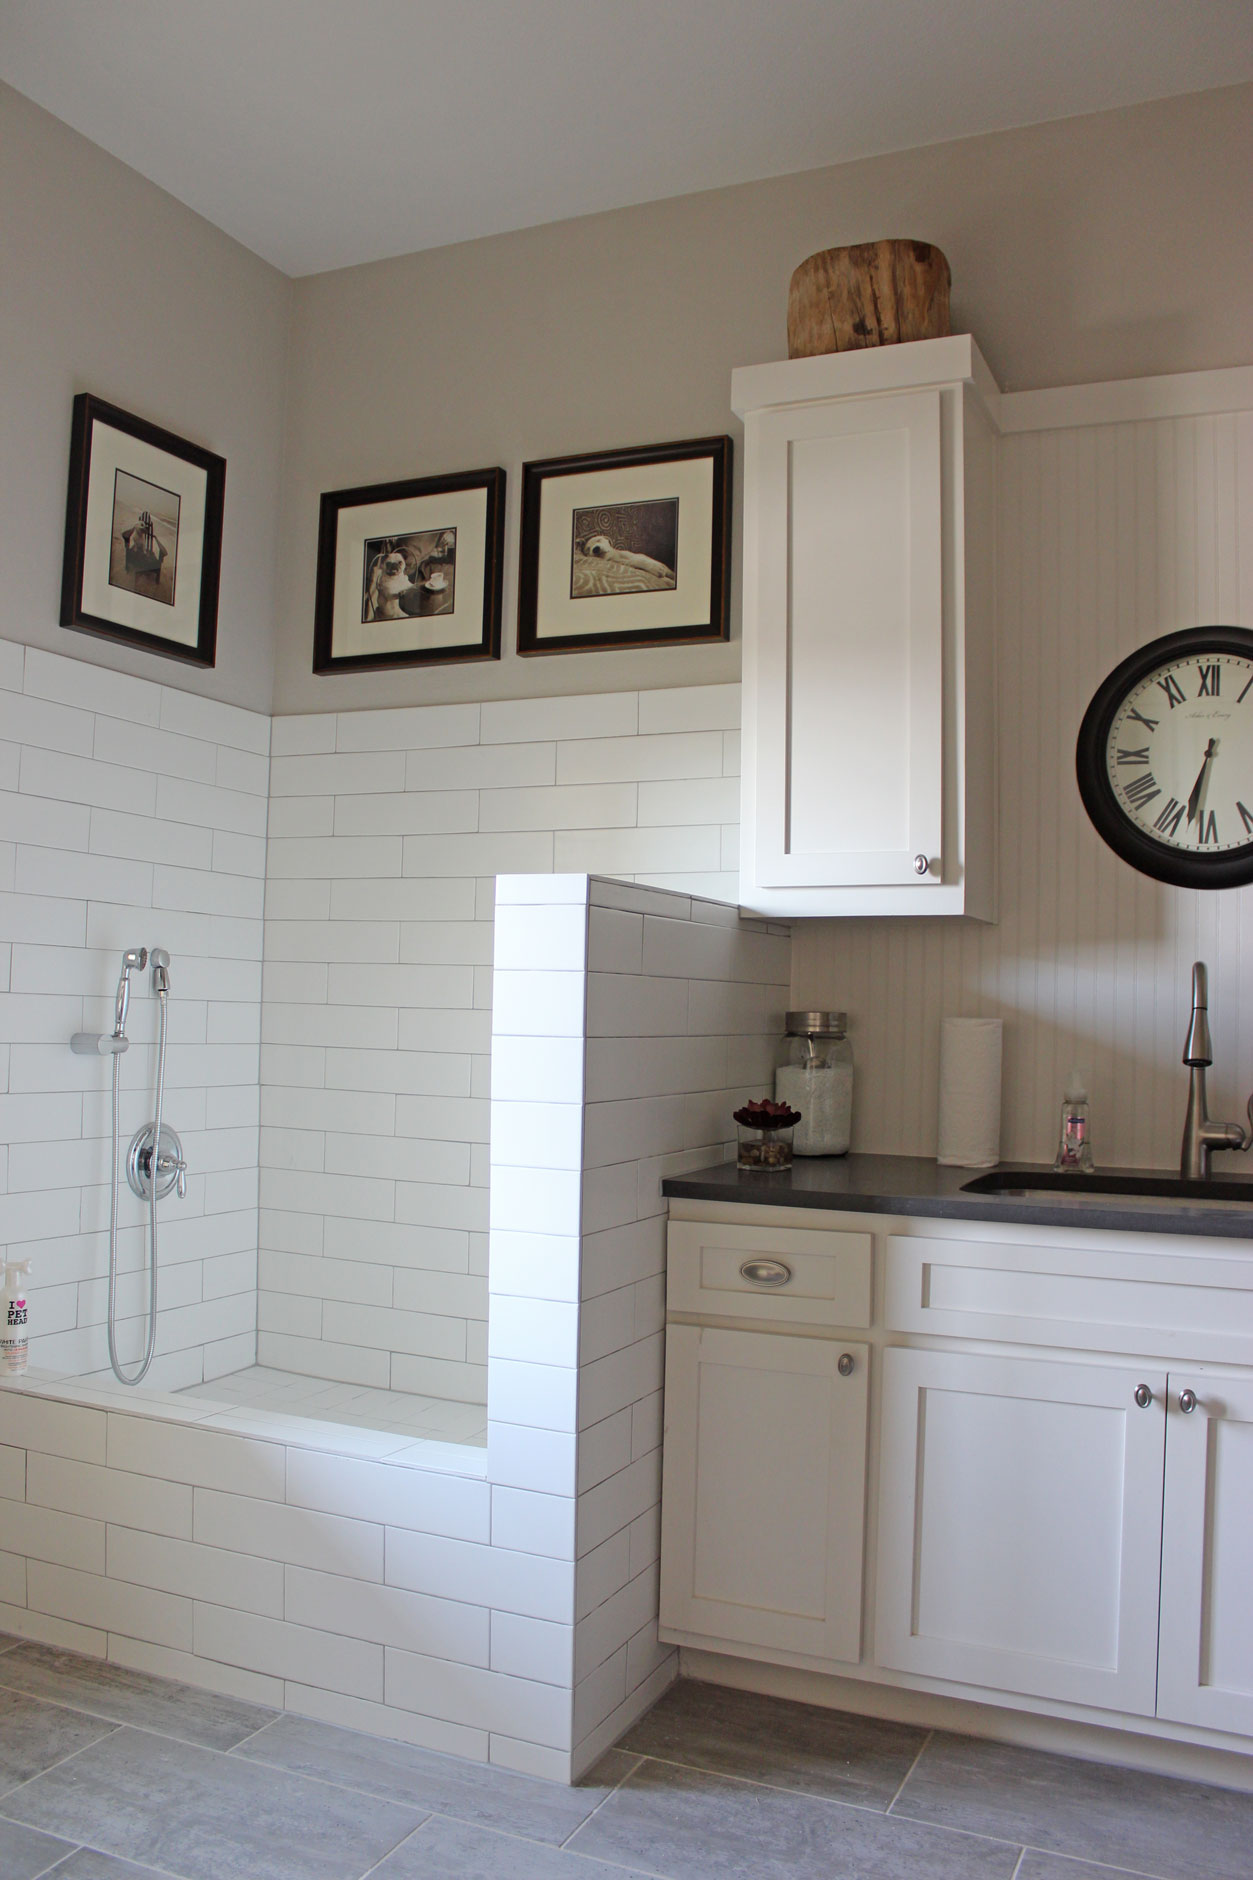 Burrows Cabinets white painted laundry room cabinets with tiled dog shower